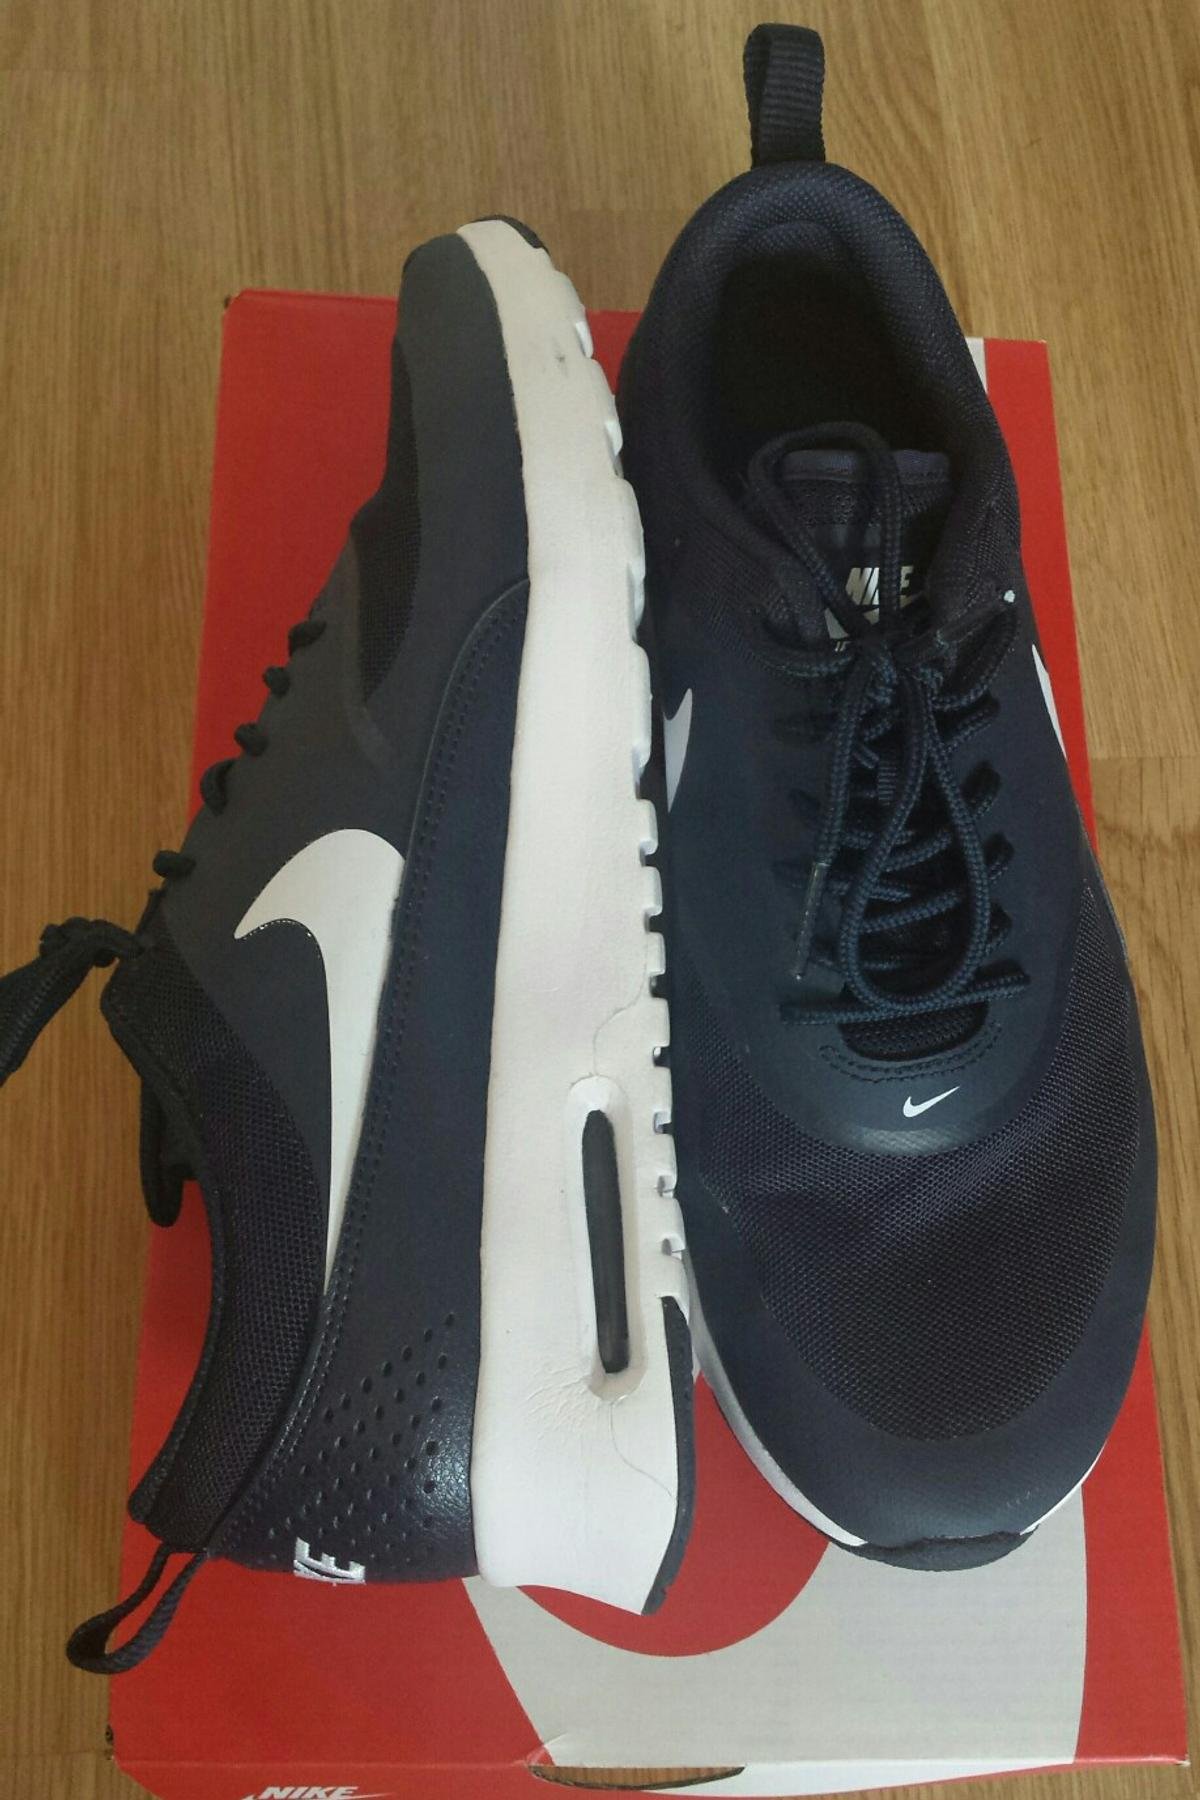 Nike Air Max Thea in 80339 München for €50.00 for sale | Shpock